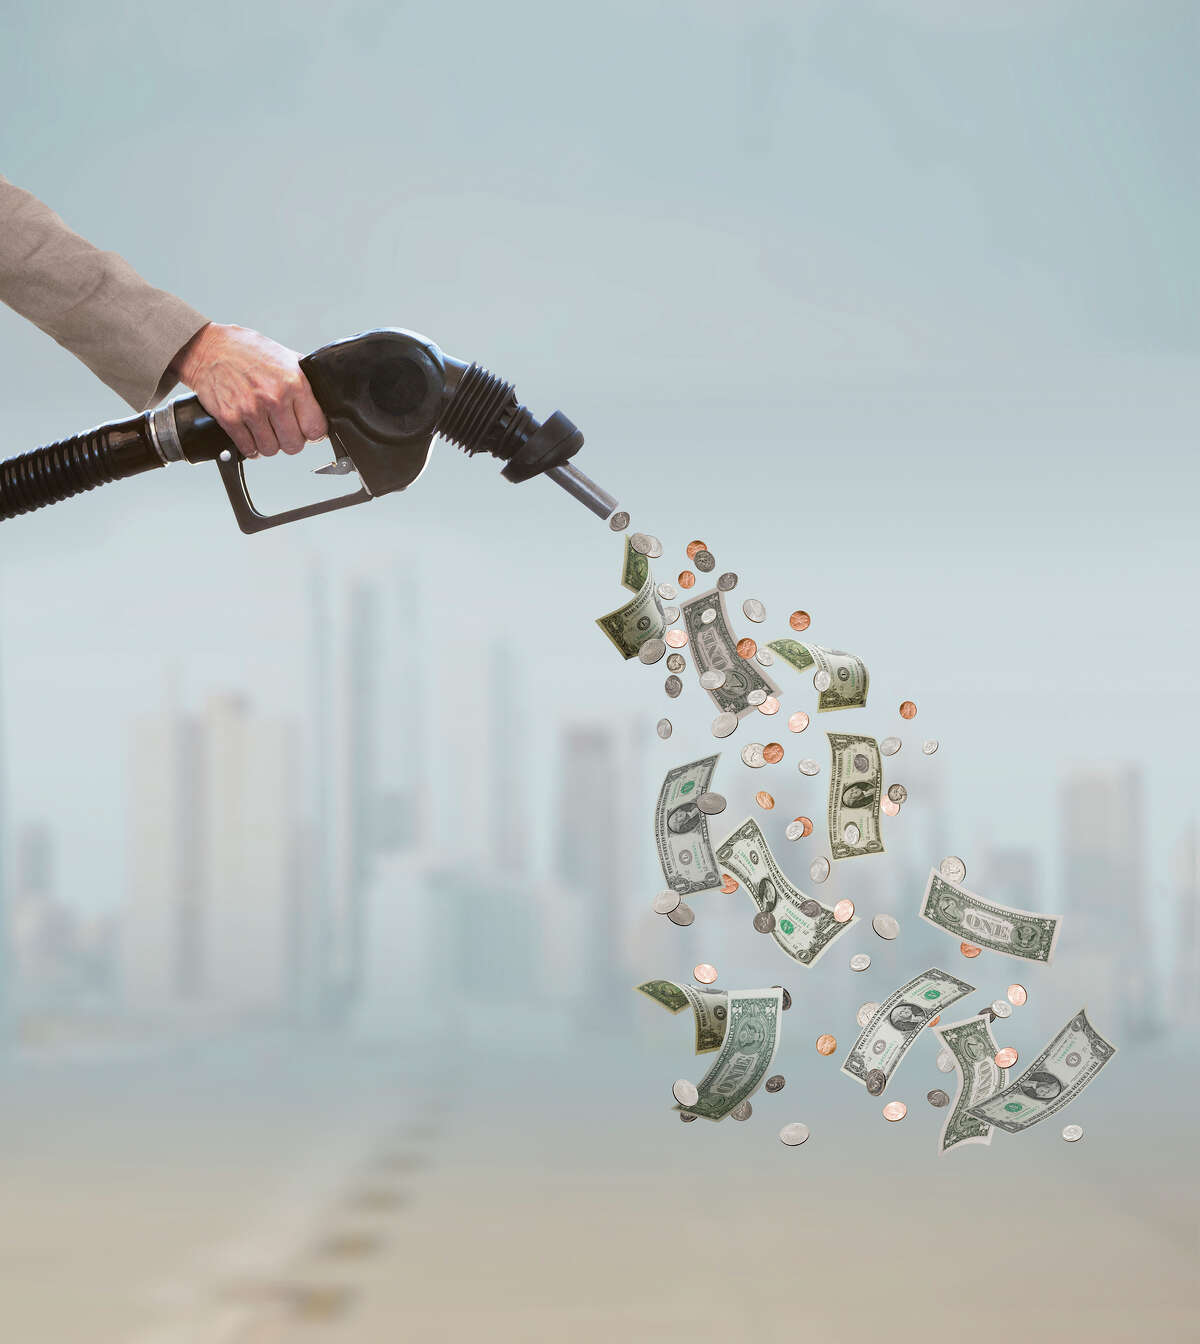 Gas prices haven't been this high since 2014, but there are simple things you can do to save.